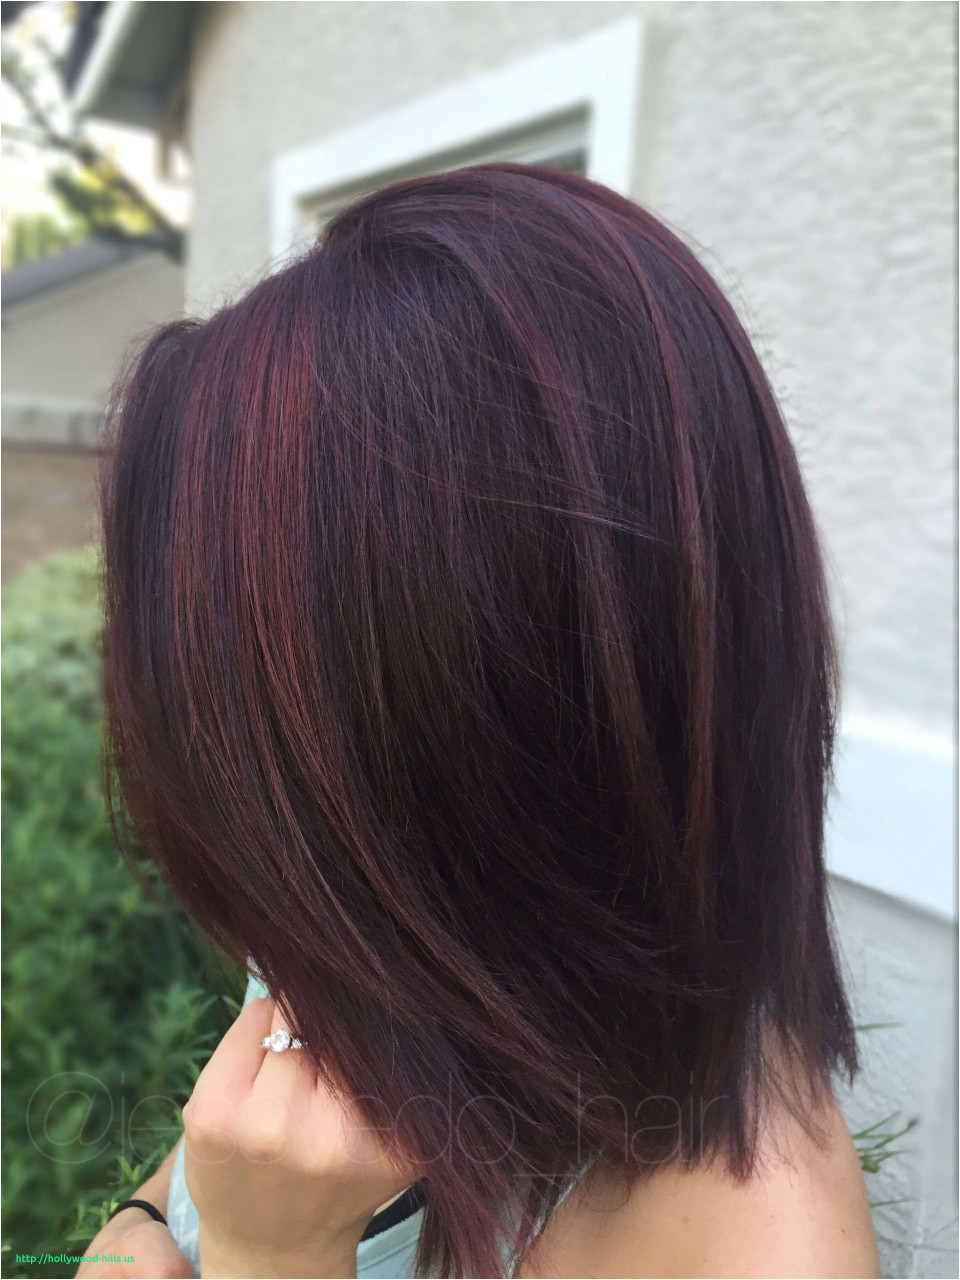 Black Hairstyles with Red Highlights 70 Red Color Hairstyles Elegant Black Hairstyles with Red Highlights